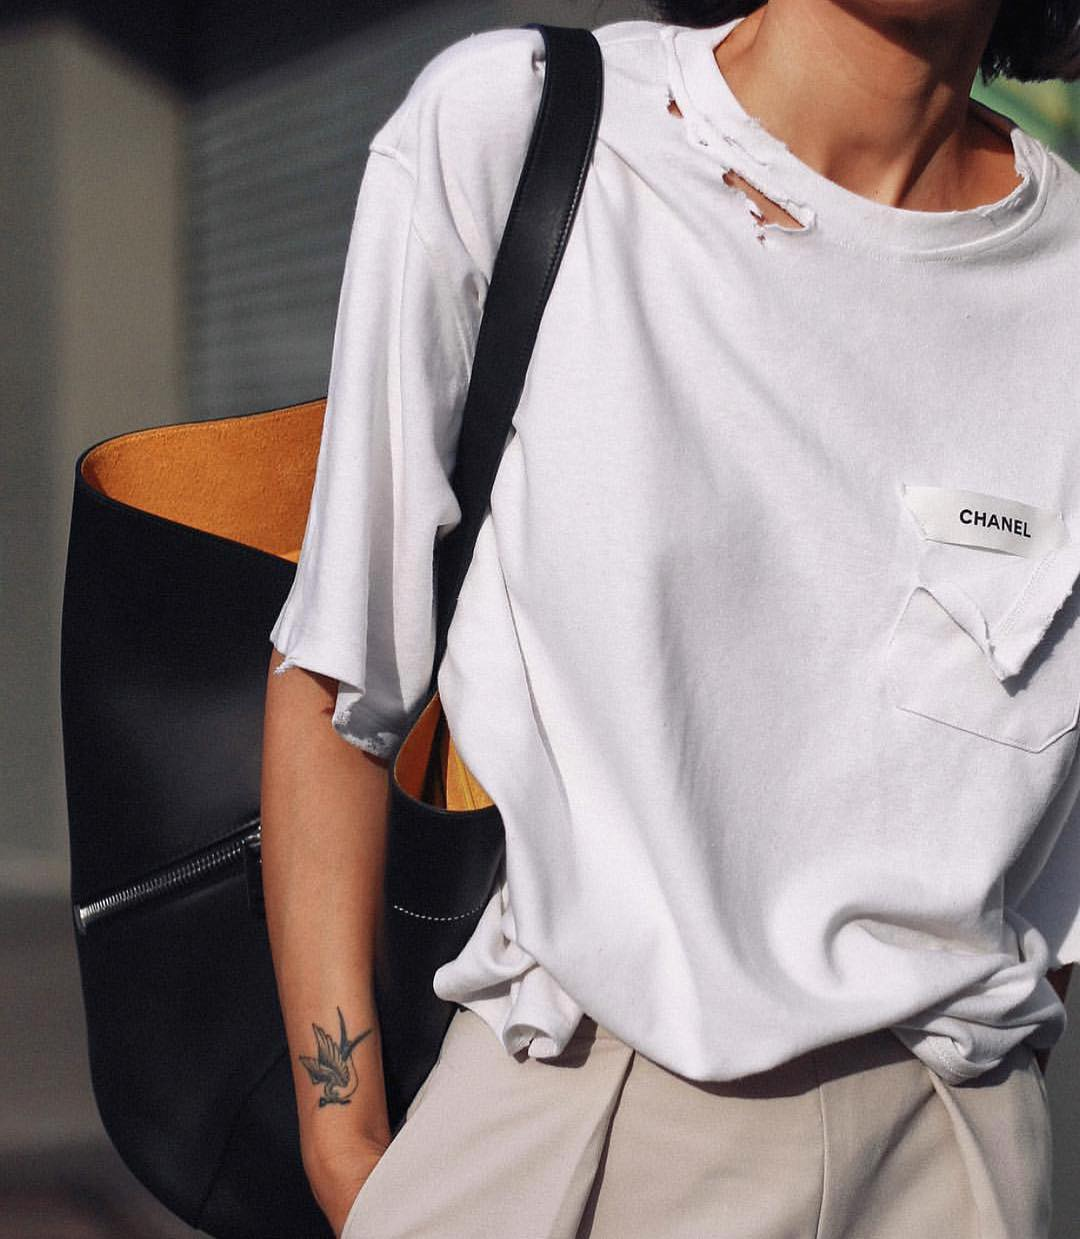 Ripped White Tee In Oversized Fit And Big Tote Bag In Black For Summer 2020